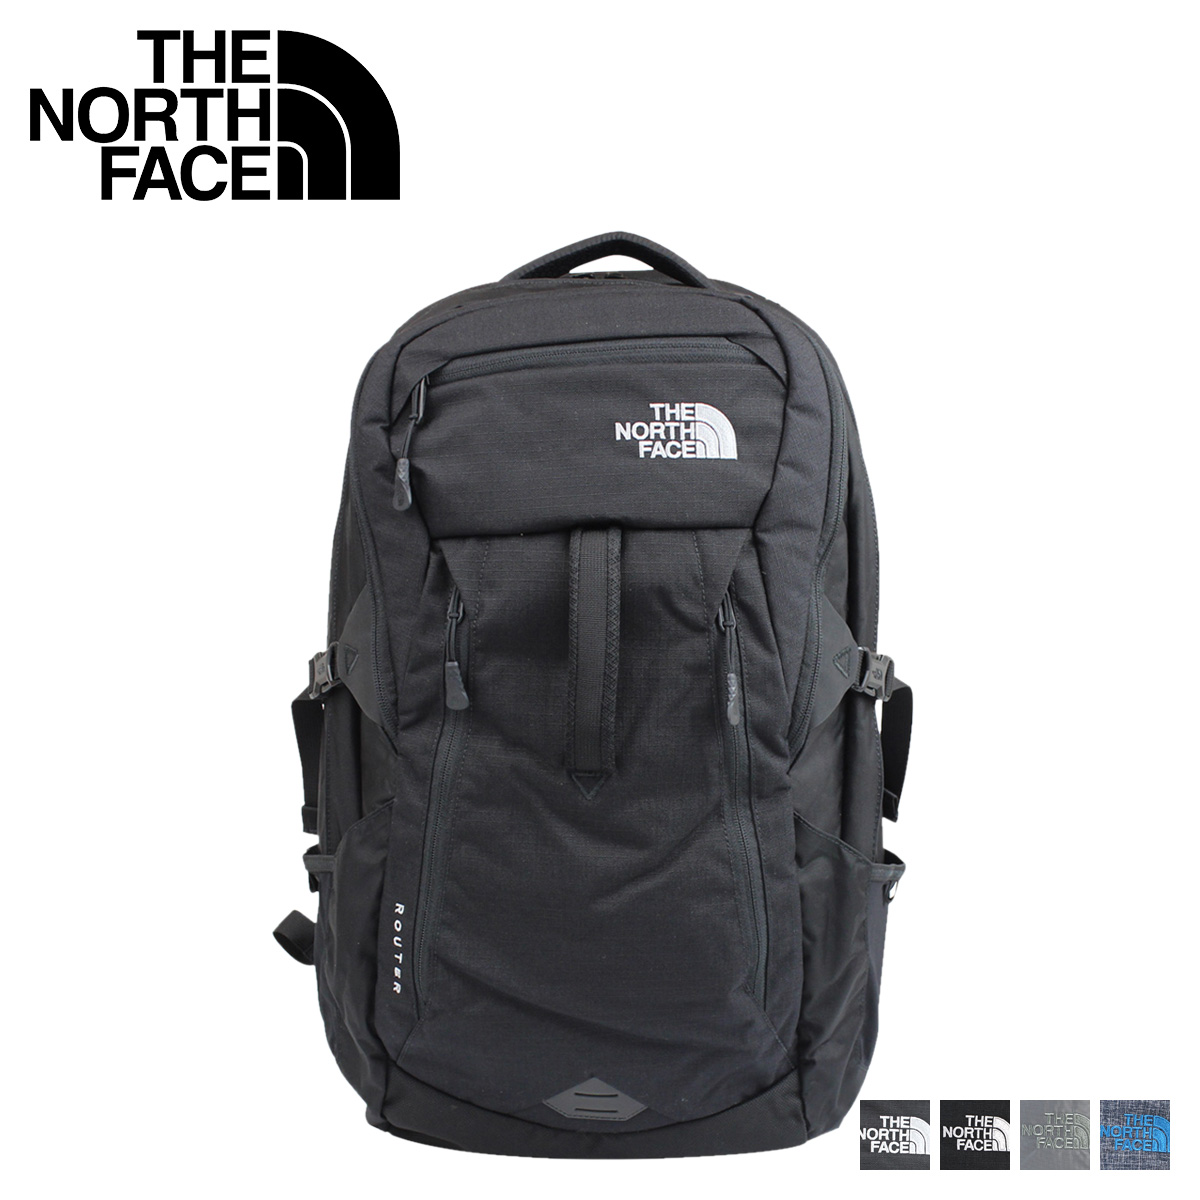 6c09204ed THE NORTH FACE North Face rucksack backpack ROUTER BACKPACK 35L LH3C men  gap Dis